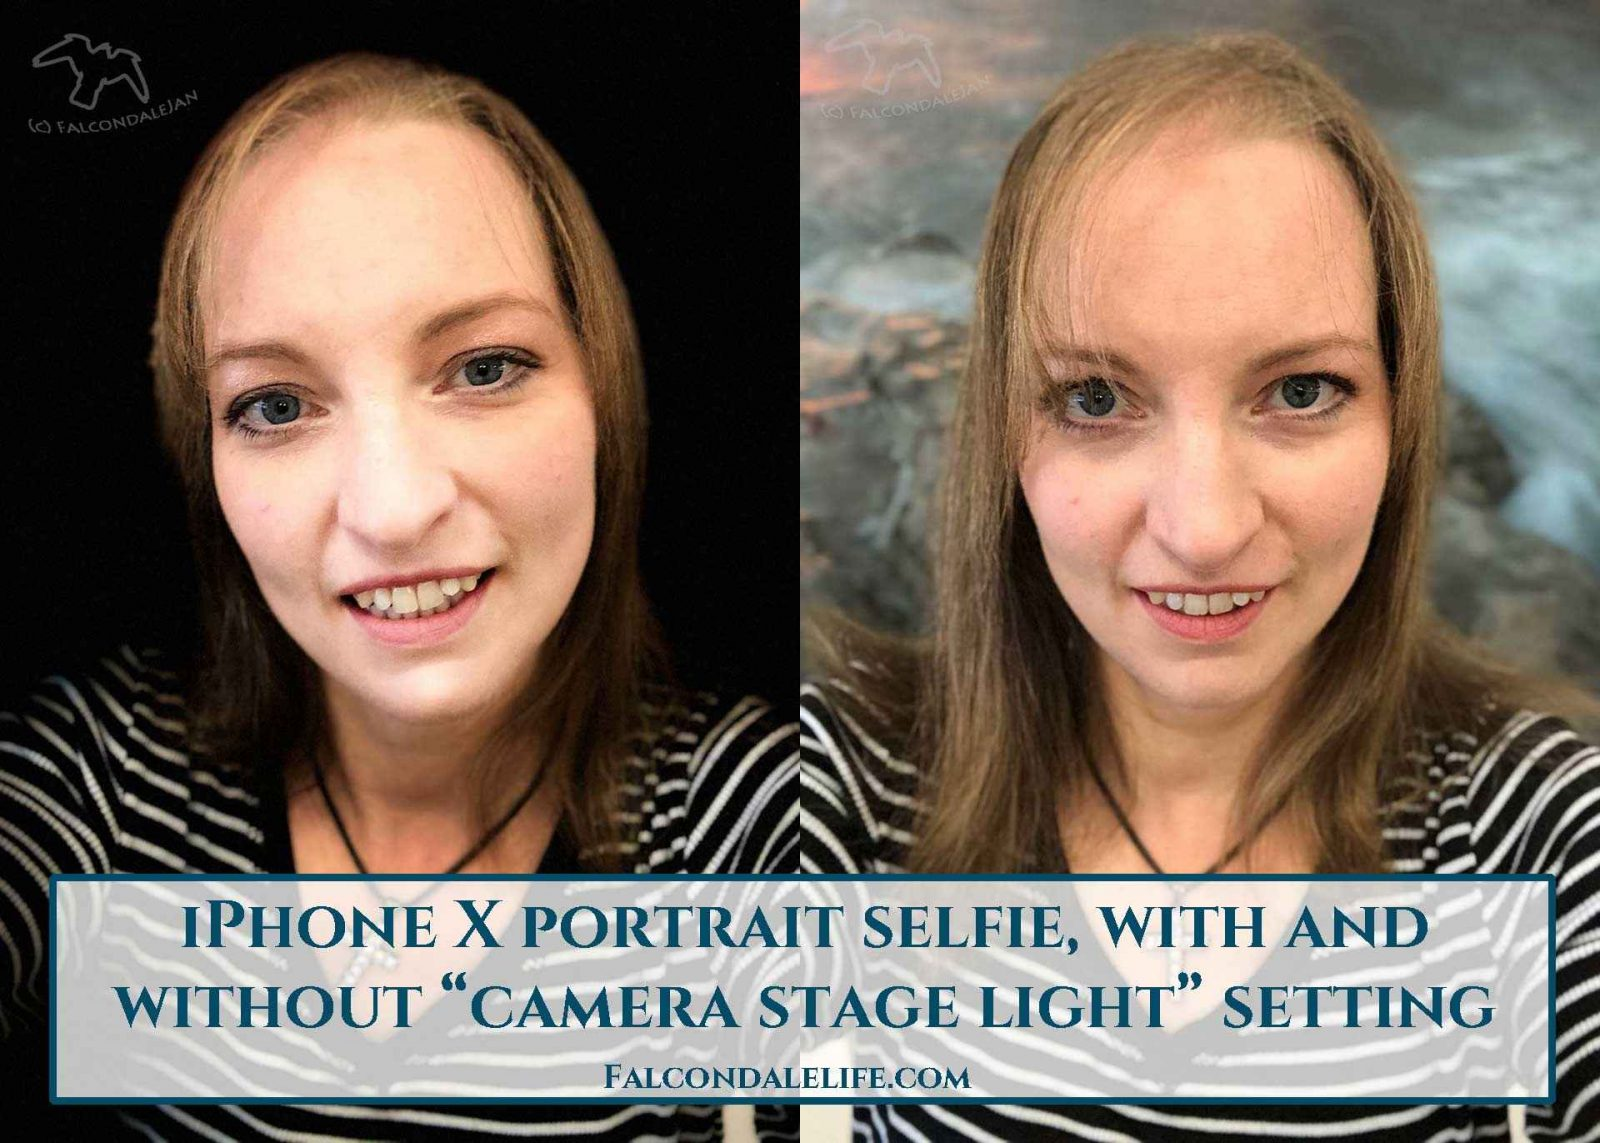 IPhone X Portrait selfie with and without camera stage light setting on Falcondale Life blog. The new things about iPhone with the iPhone X are mainly improved selfie functions. A detailed look at Apple's iPhone X's Face ID recognition screen unlock, animojis, no more home button and portrait lighting. A very honest review of this flagship smartphone launch with photography and camera on test by FalcondaleJan.